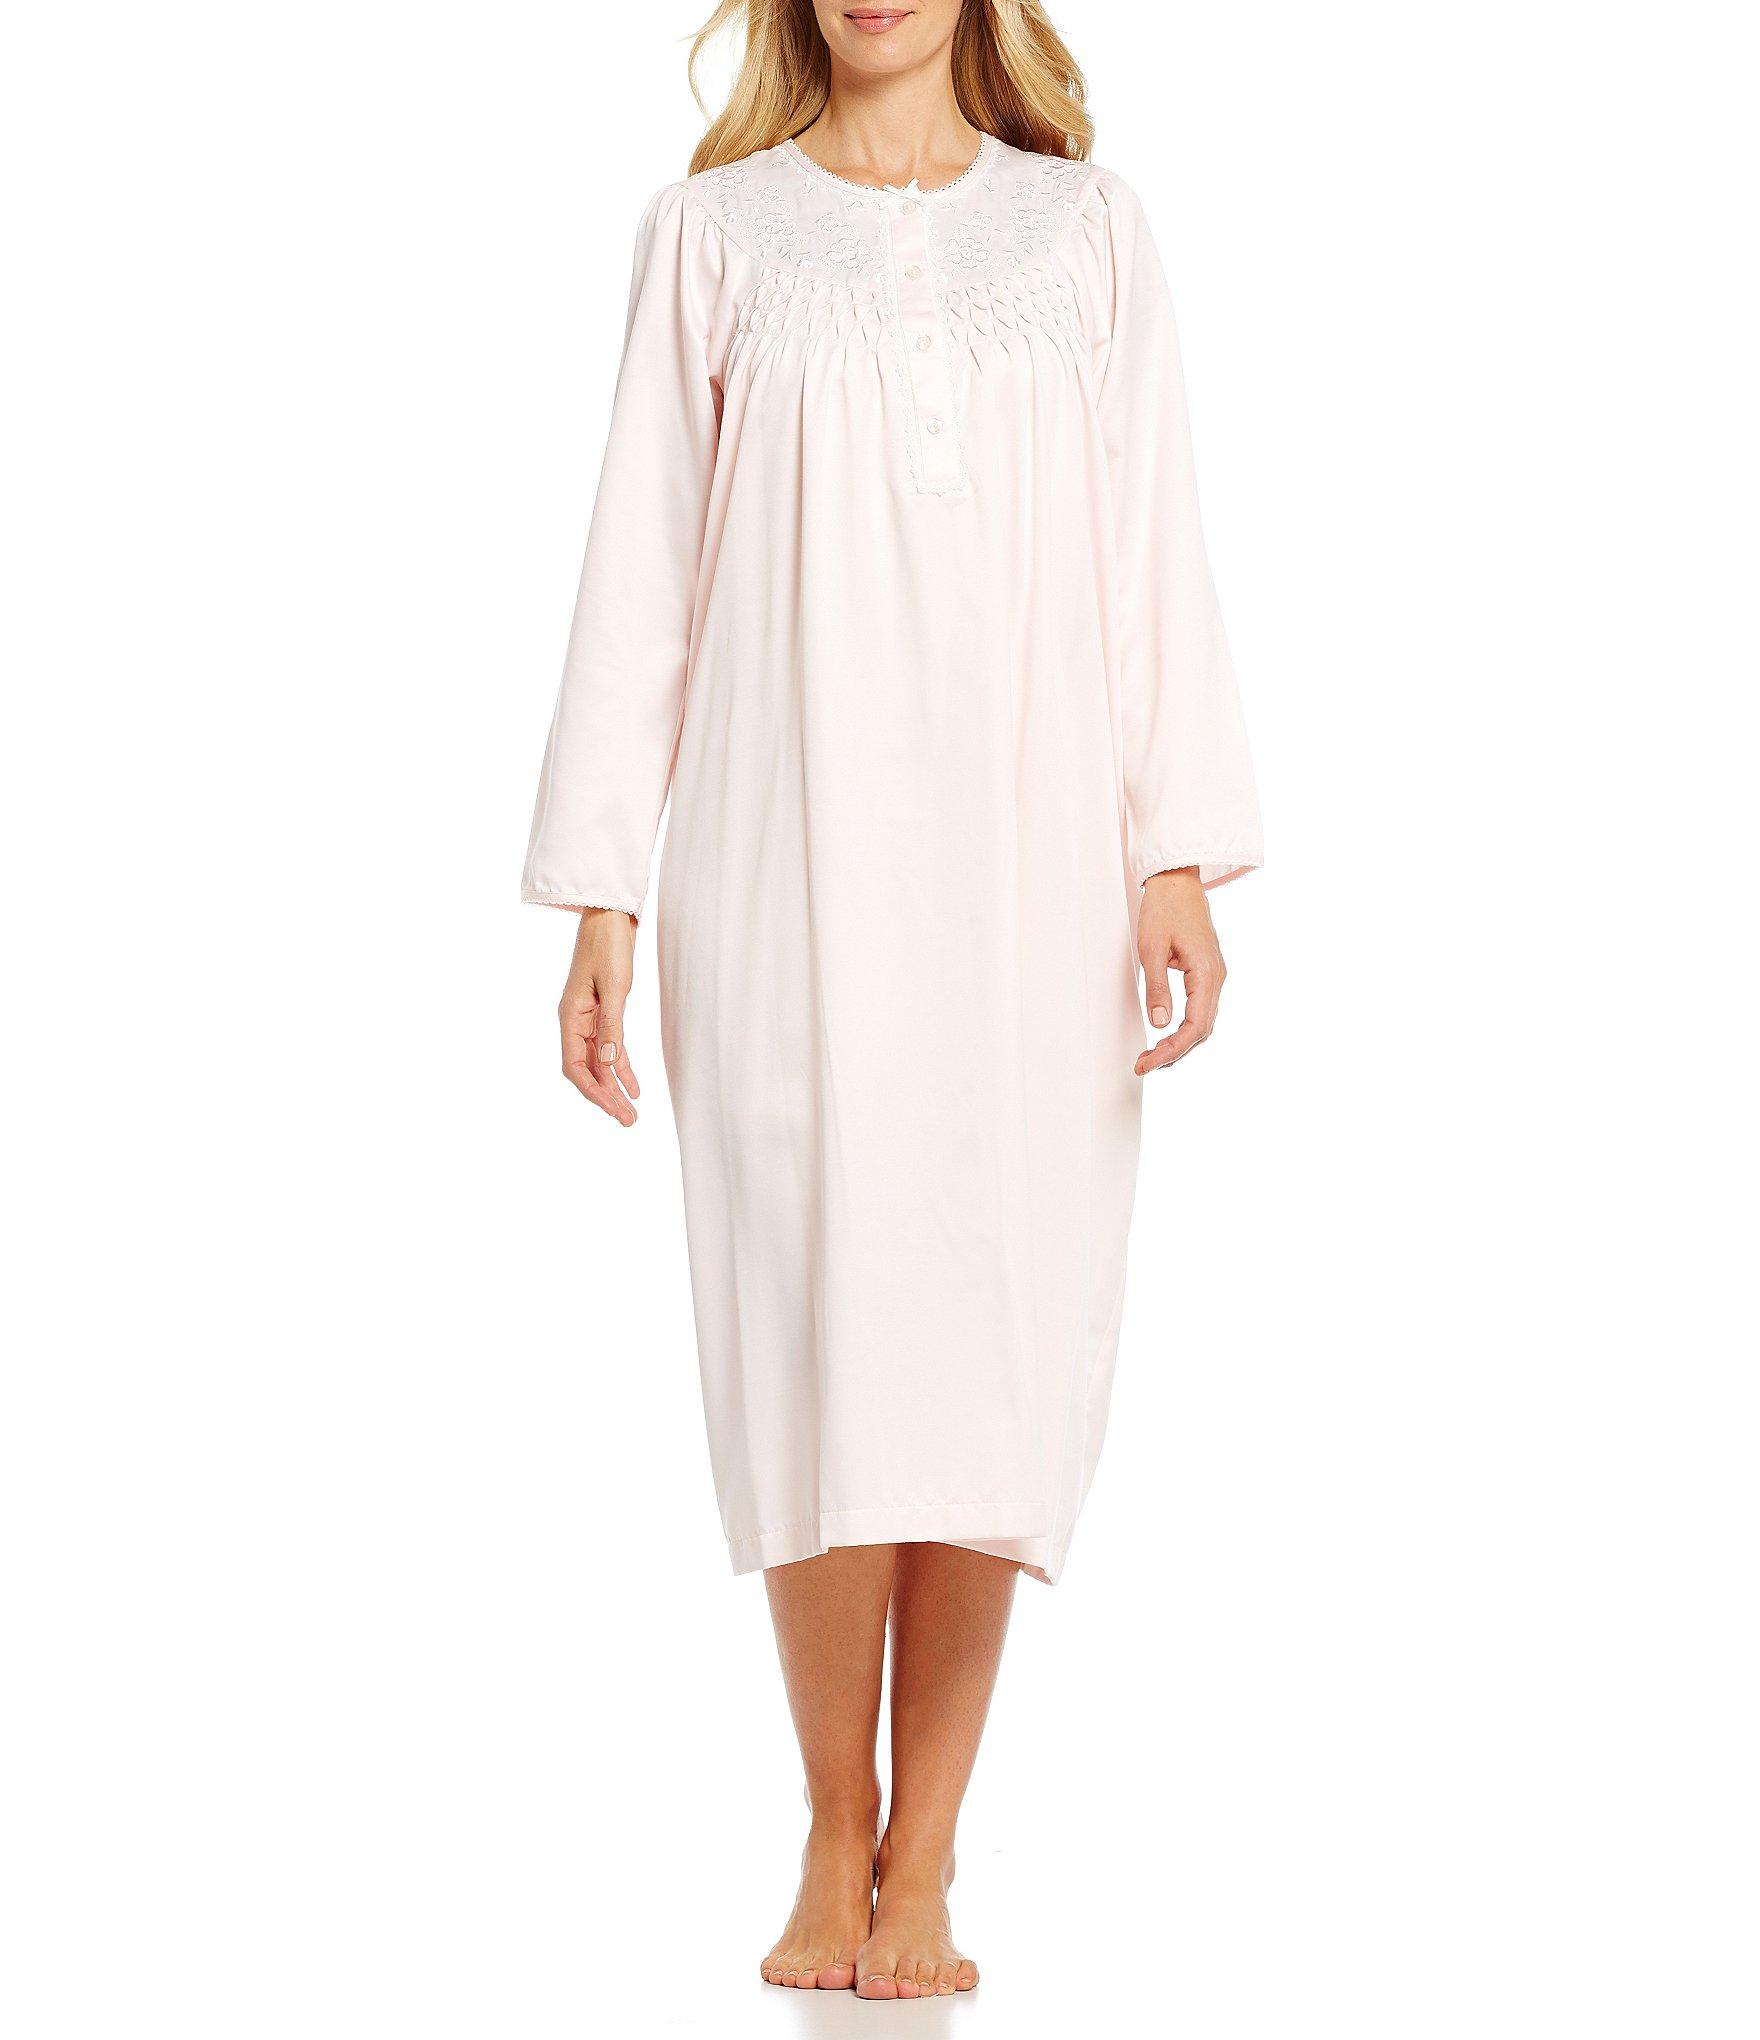 5b776dc6ba Lyst - Miss Elaine Petite Brushed Back Satin Embroidered Nightgown ...